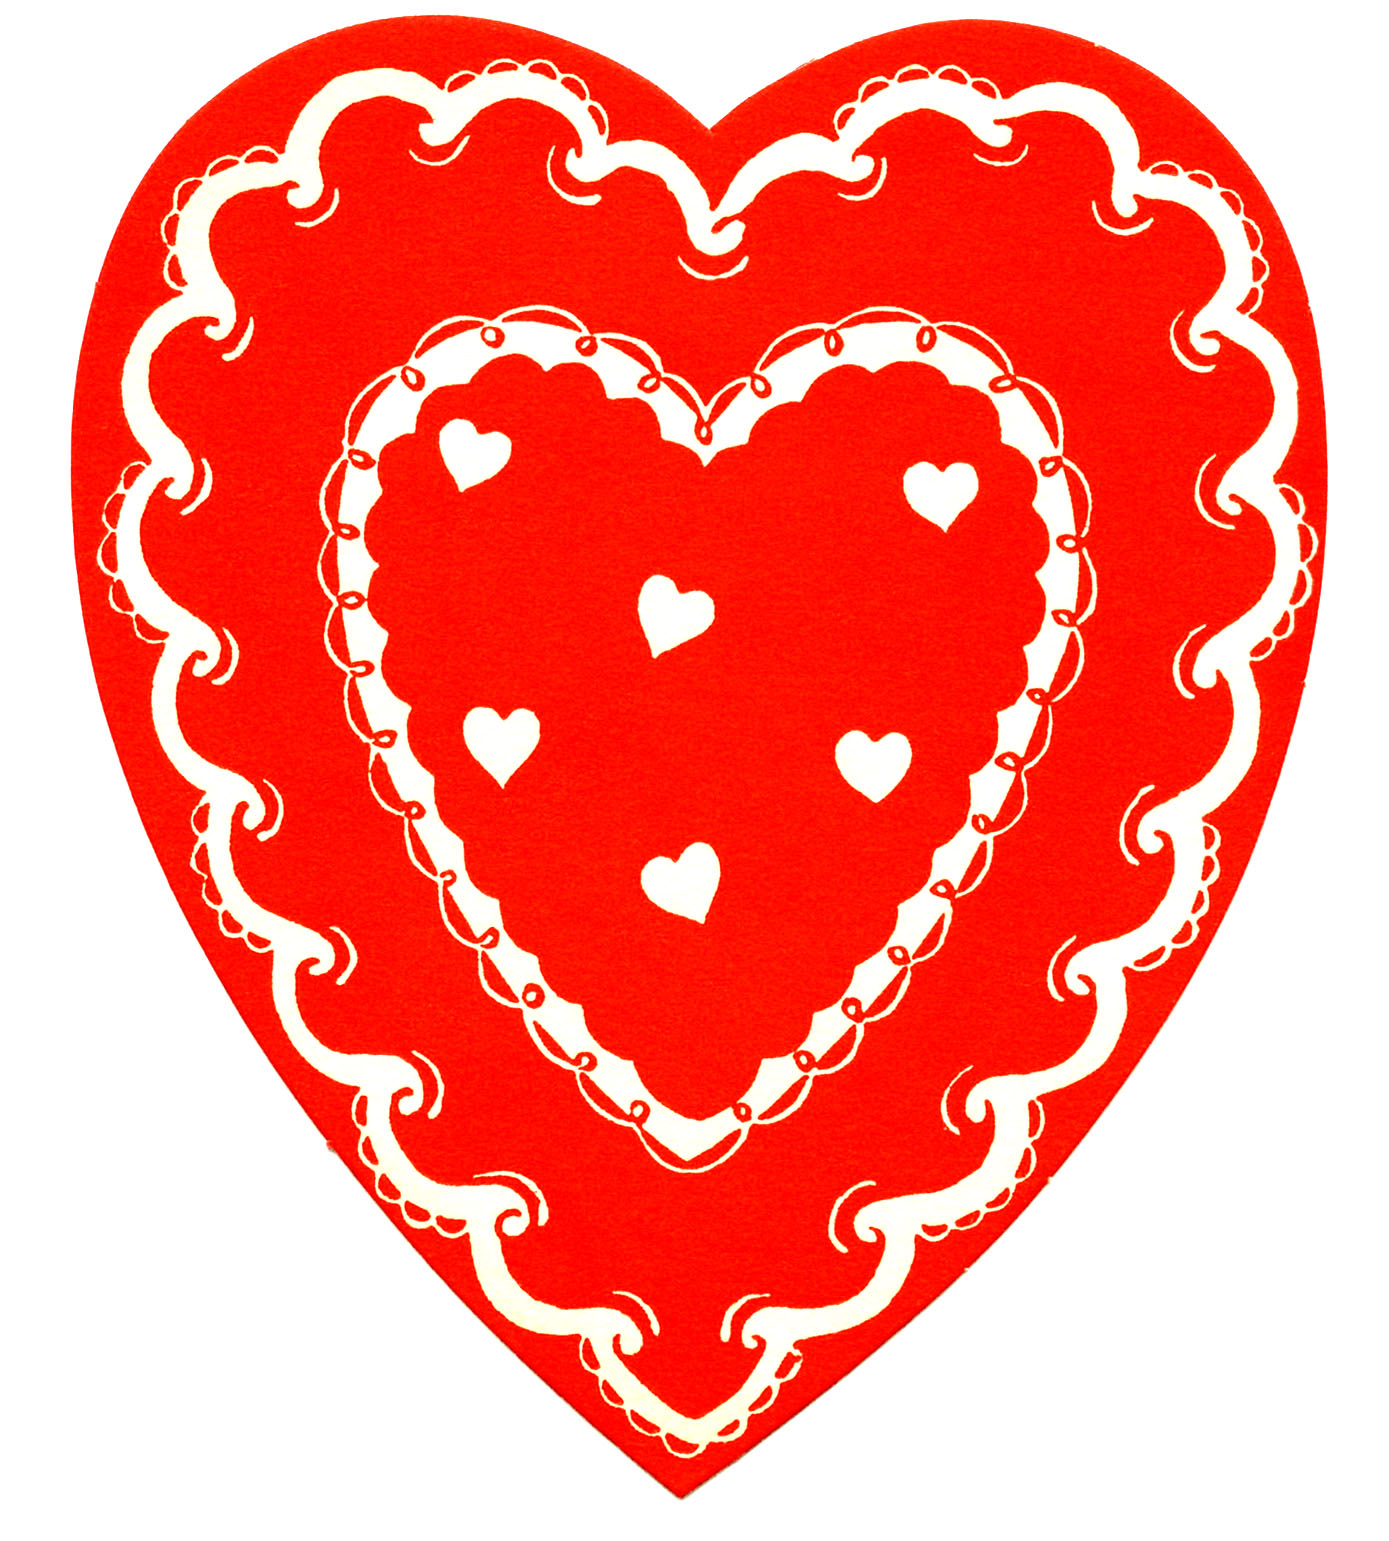 Heart Clipart Image: Red Heart. Vintage Valentine